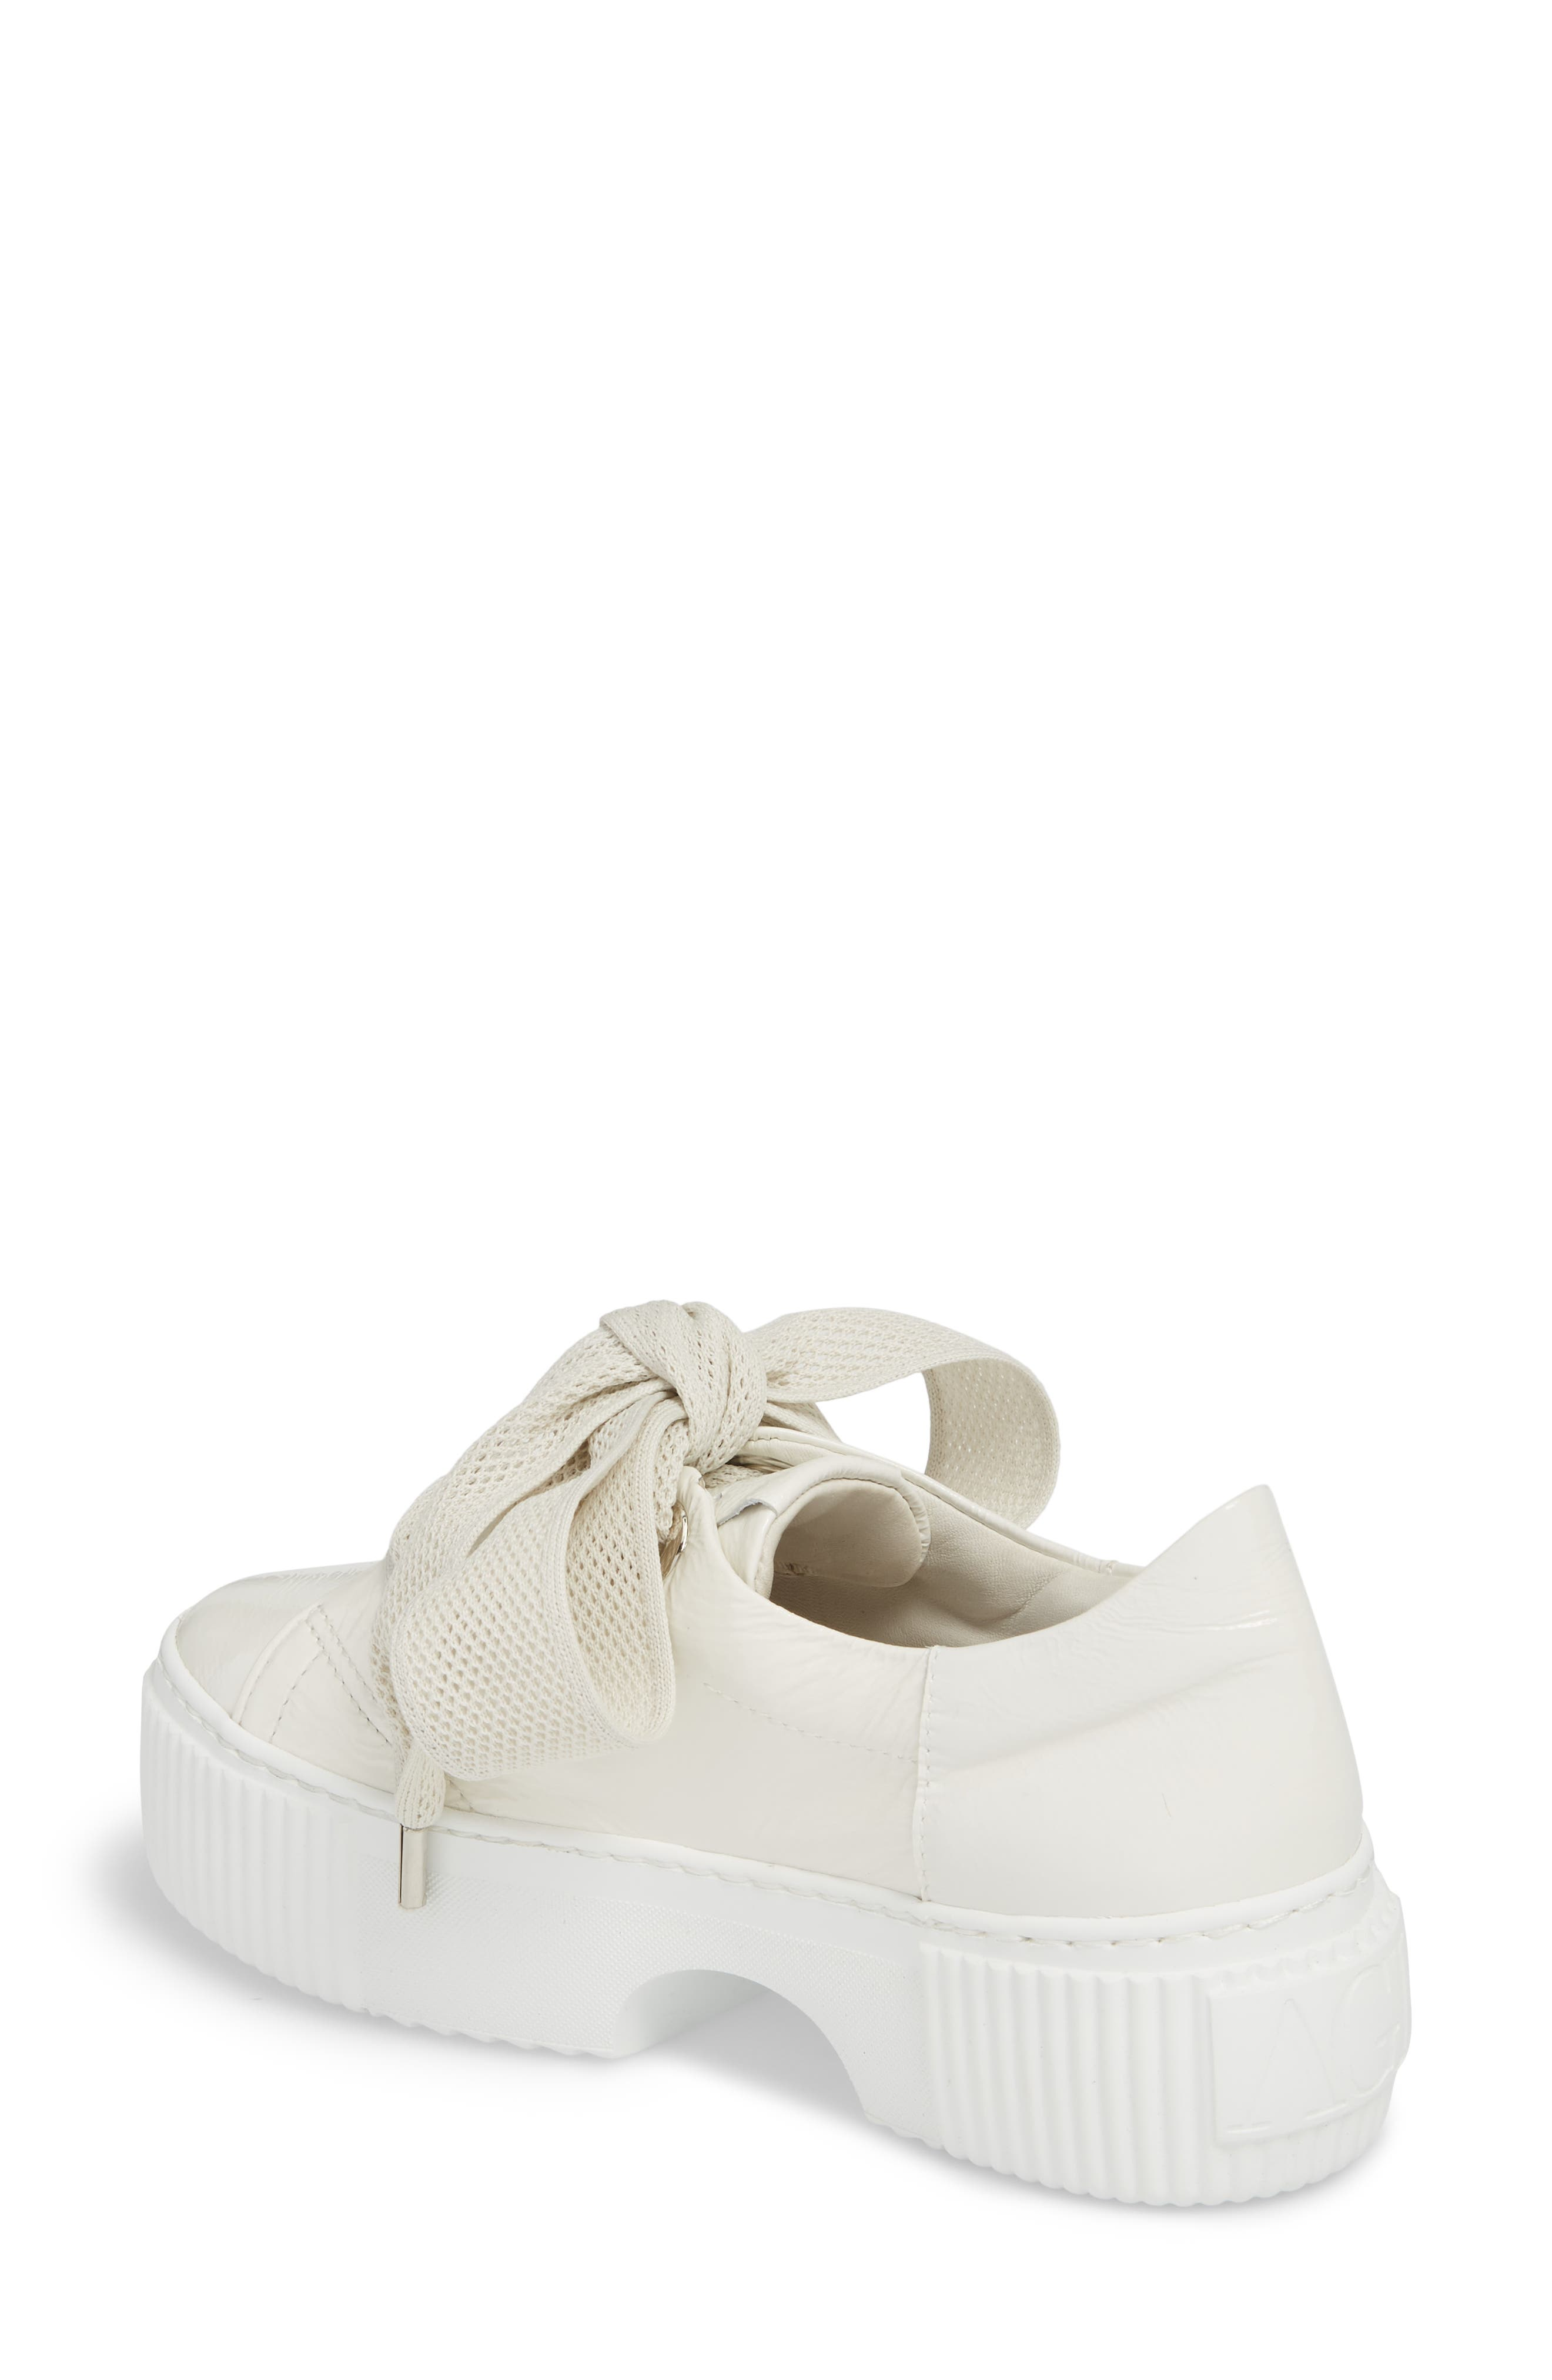 Platform Sneaker,                             Alternate thumbnail 2, color,                             WHITE GLAMMY LEATHER